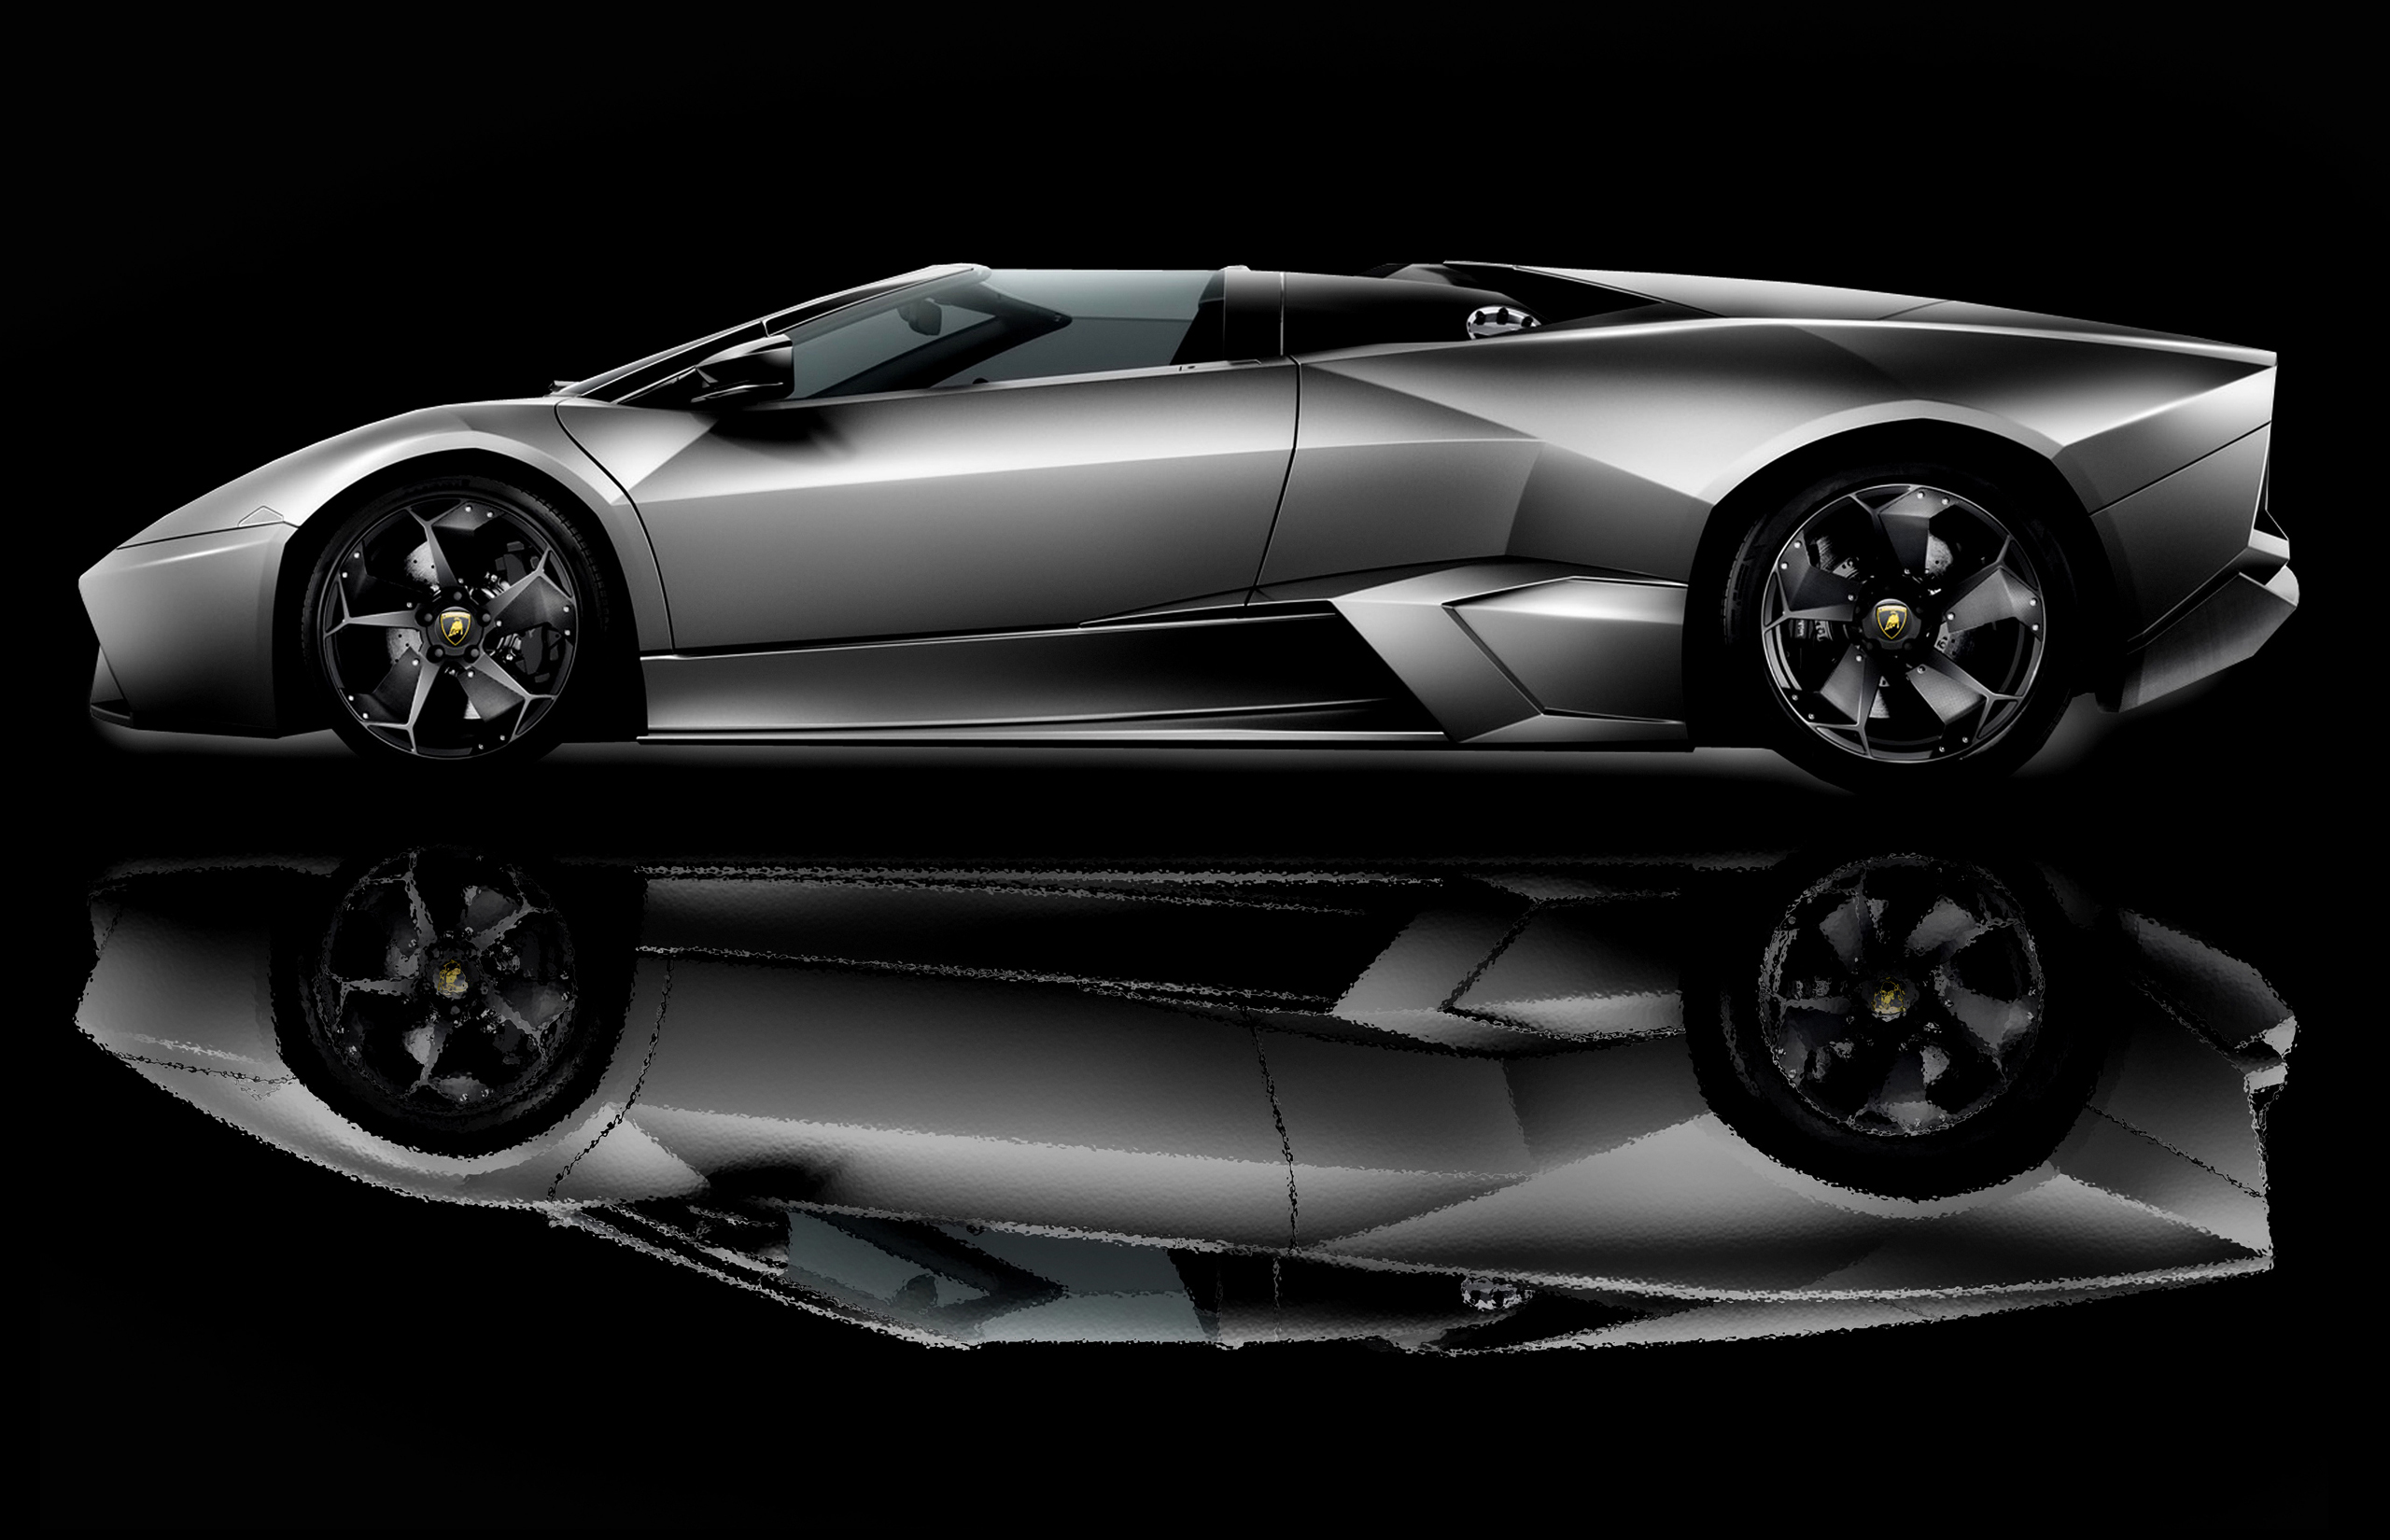 lamborghini wallpaper background 2560x1650